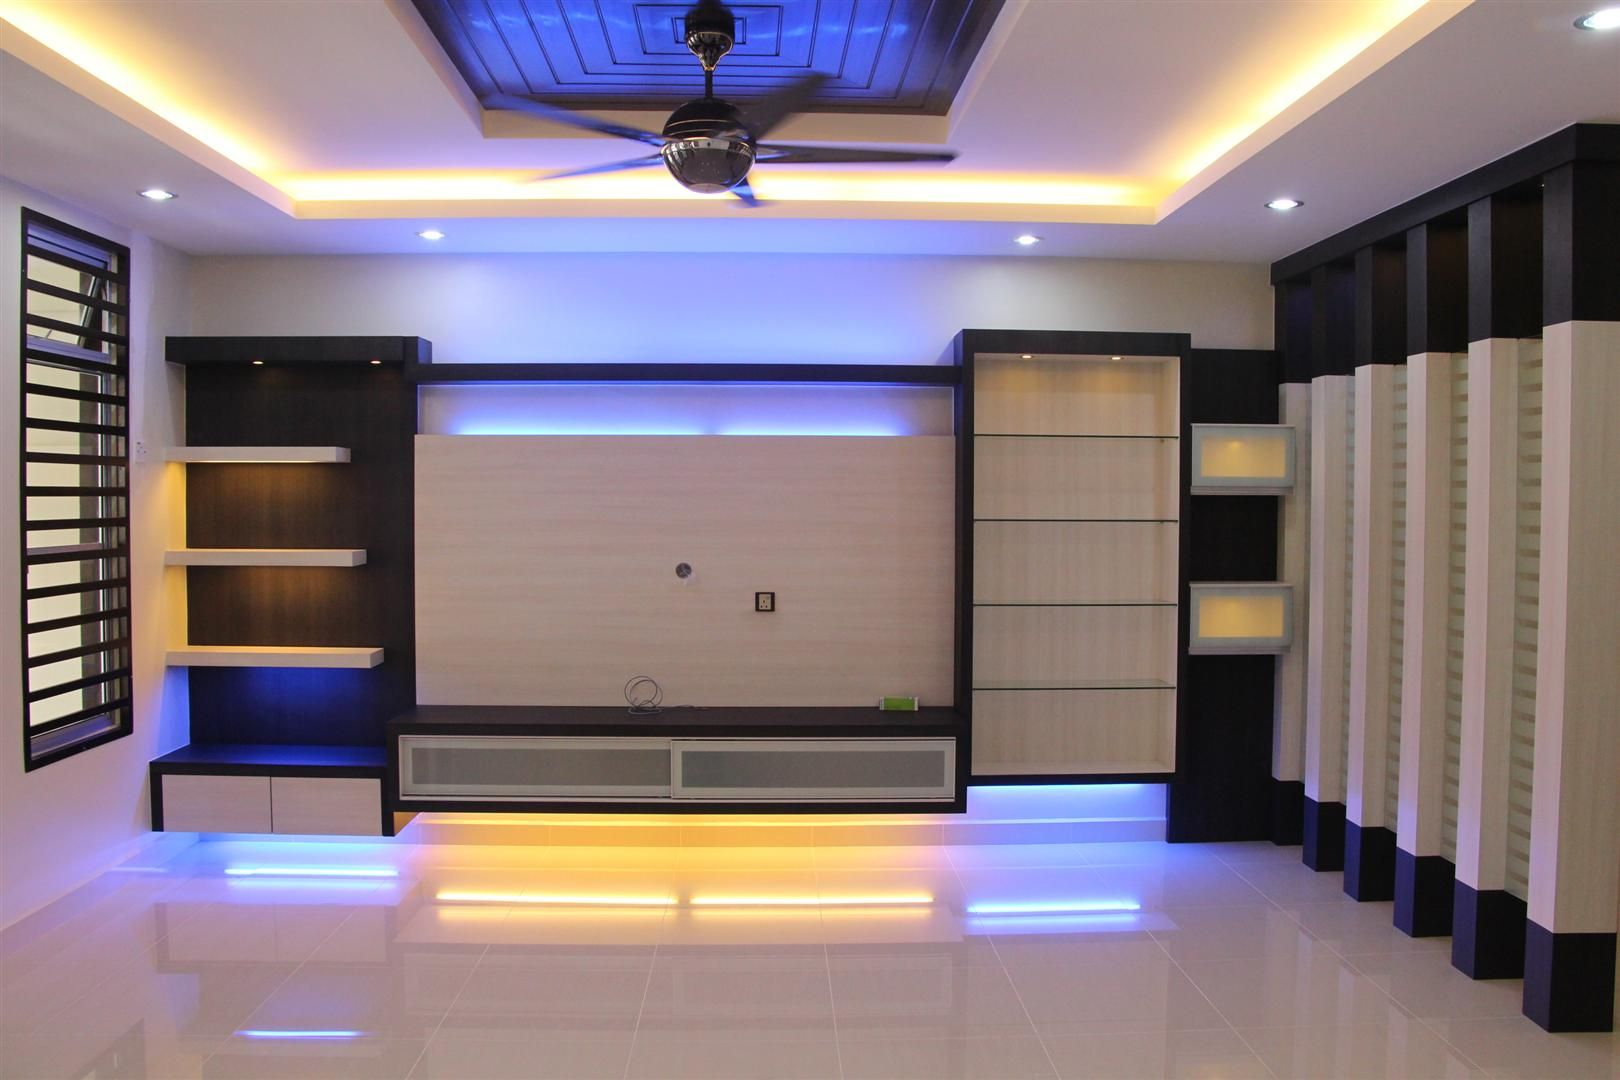 Trend Tv Unit Design For Hall 2018 Incoming Search Terms